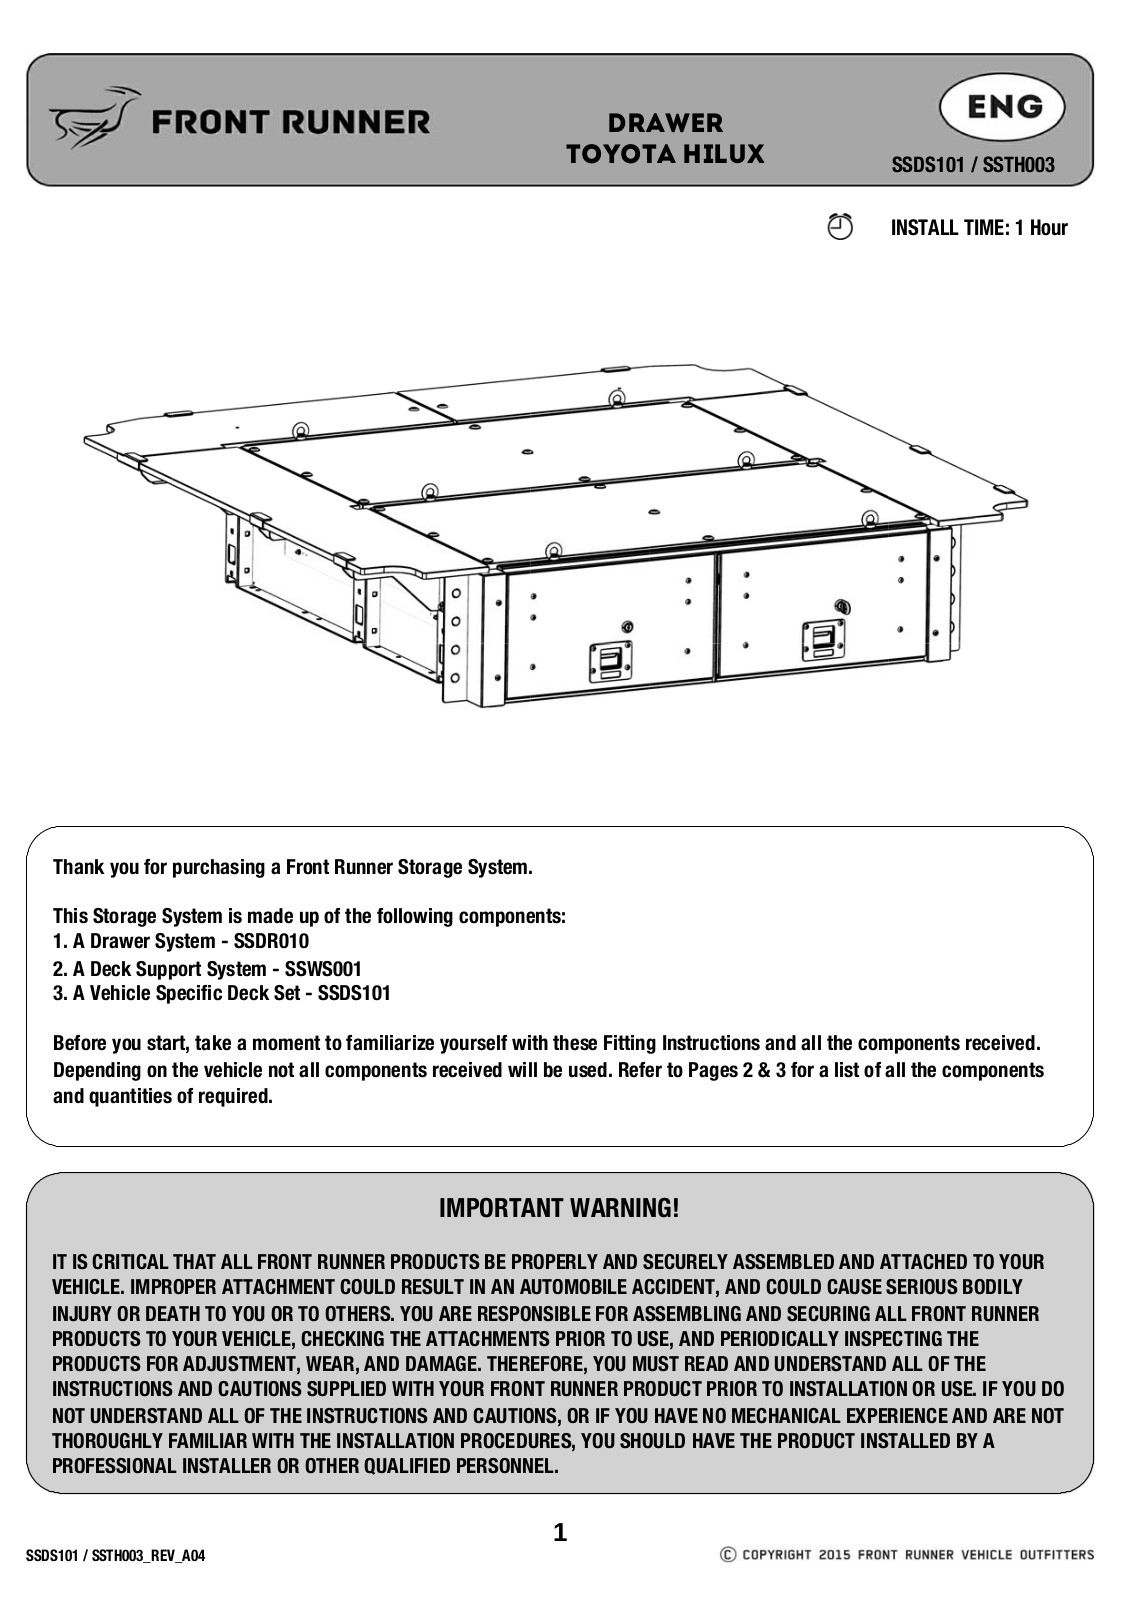 Installation instructions for SSTH003